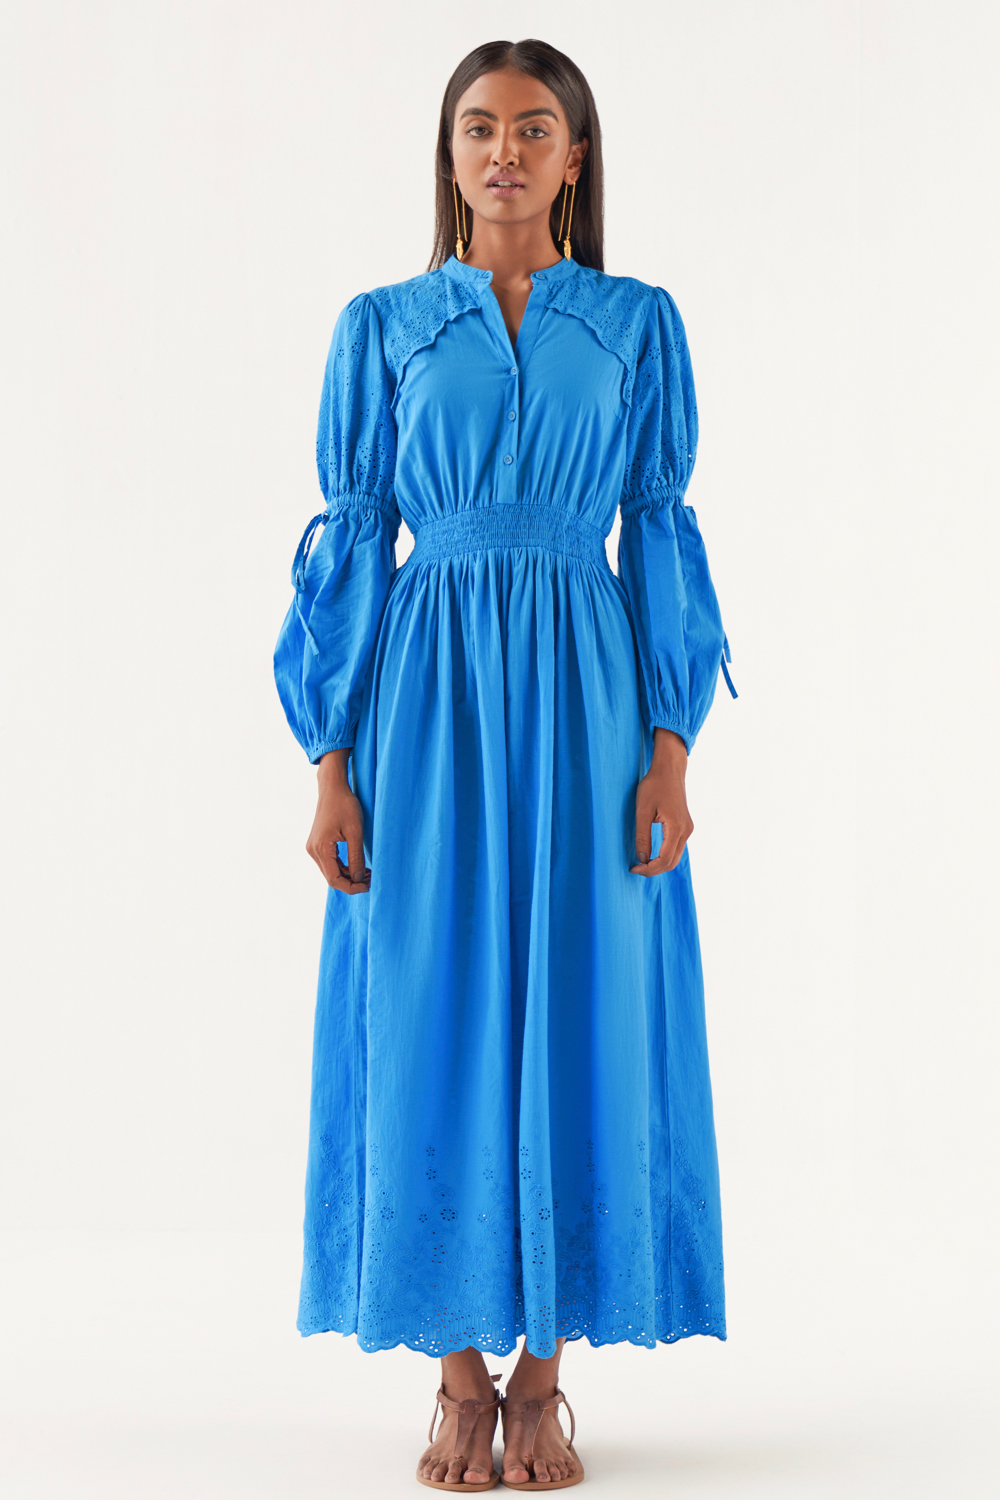 MARRAKESH COBALT BLUE  COTTON SCHIFFLI ANKLE LENGTH DRESS WITH FULL LENGTH SLEEVES AND POCKETS